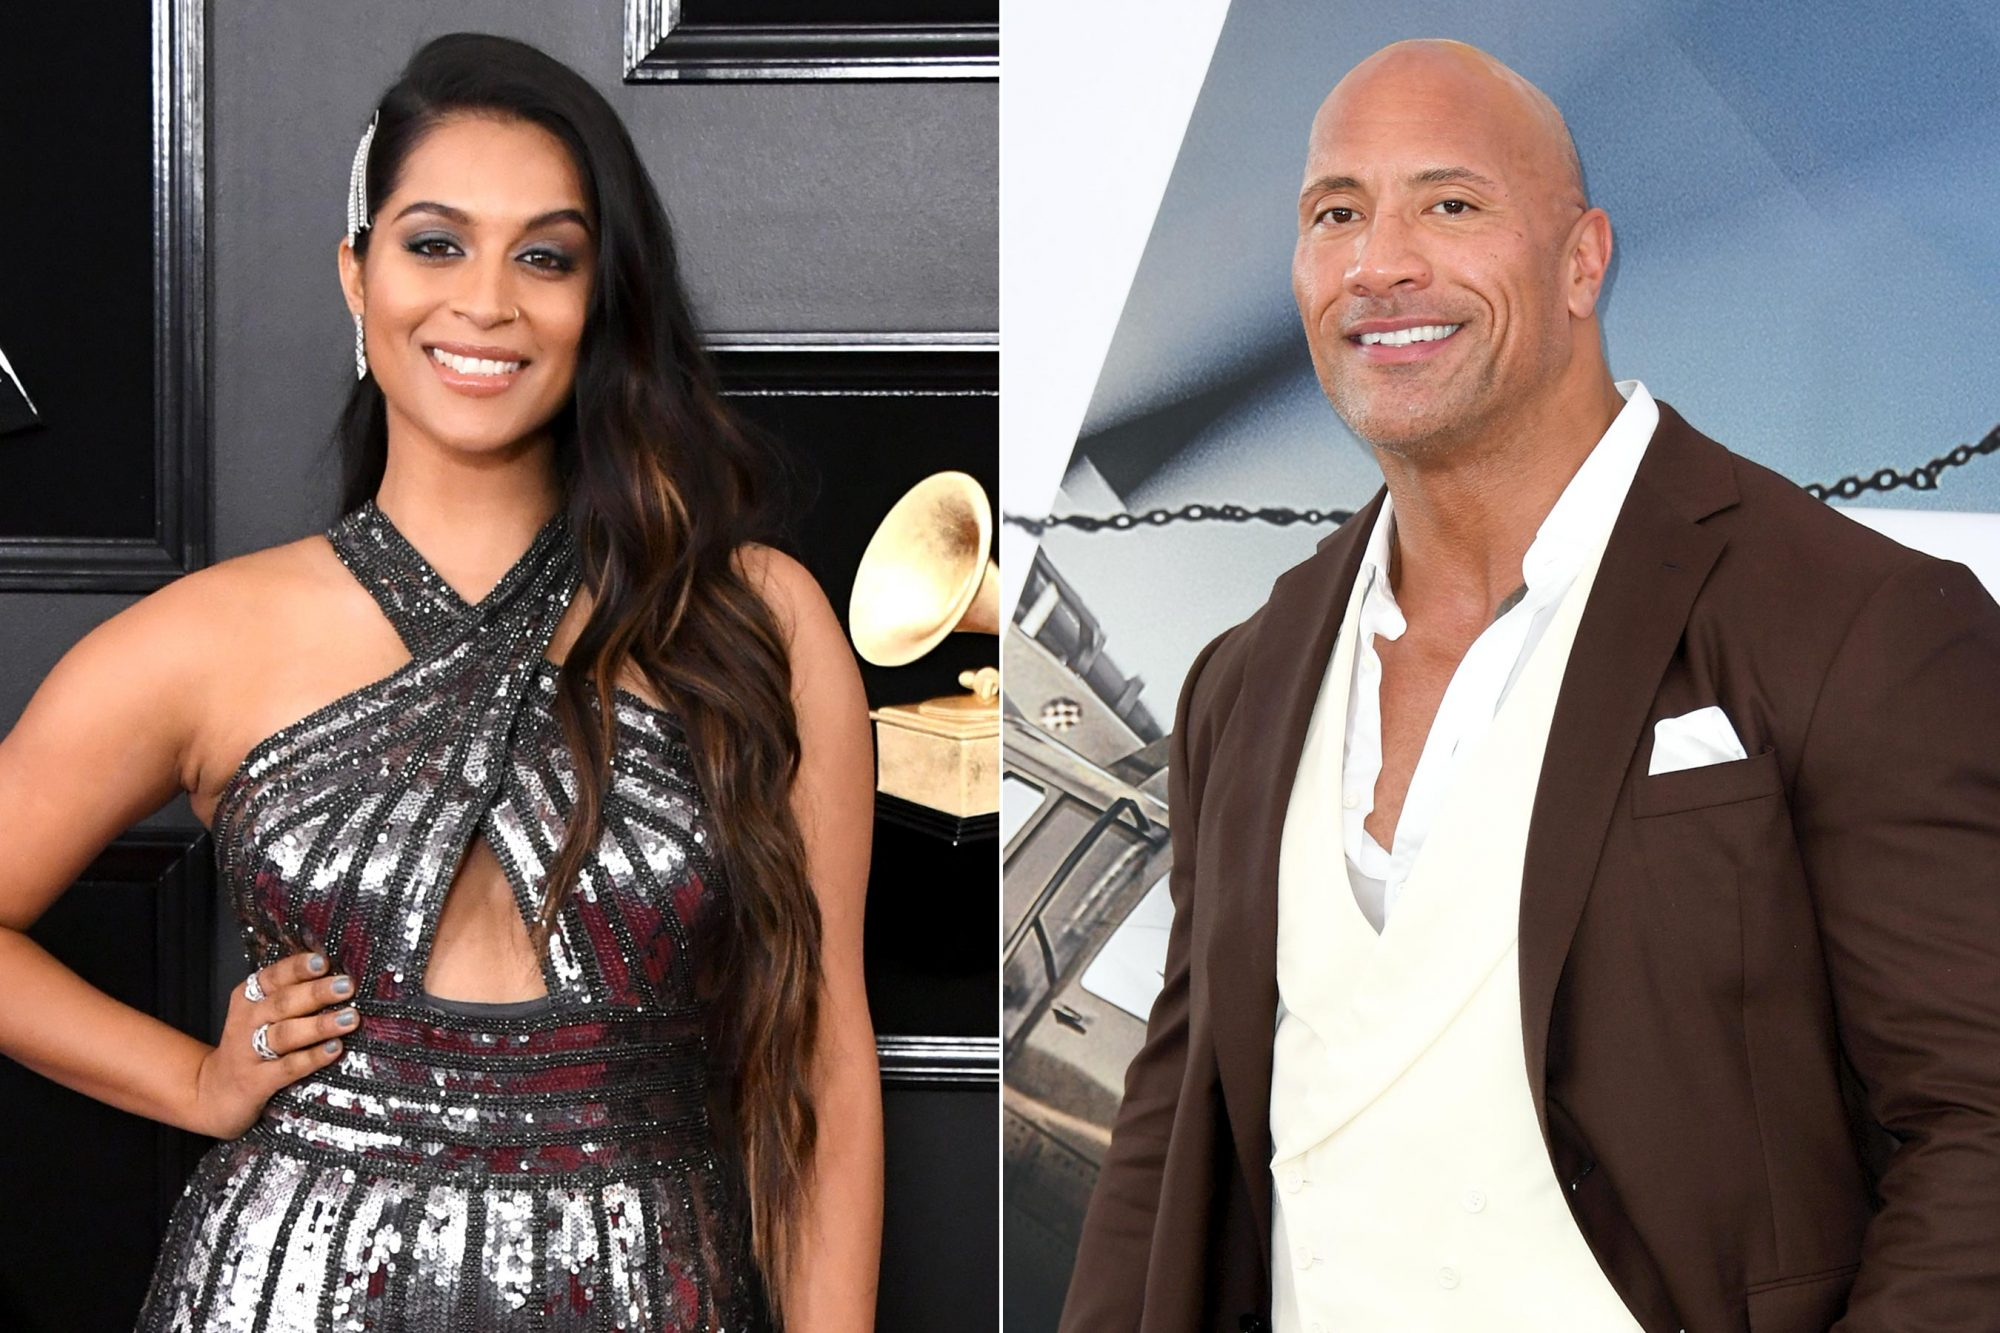 "LOS ANGELES, CALIFORNIA - FEBRUARY 10: Lilly Singh attends the 61st Annual GRAMMY Awards at Staples Center on February 10, 2019 in Los Angeles, California. (Photo by Jon Kopaloff/Getty Images) HOLLYWOOD, CALIFORNIA - JULY 13: Dwayne Johnson attends the premiere of Universal Pictures' ""Fast & Furious Presents: Hobbs & Shaw"" at Dolby Theatre on July 13, 2019 in Hollywood, California. (Photo by Jon Kopaloff/Getty Images)"